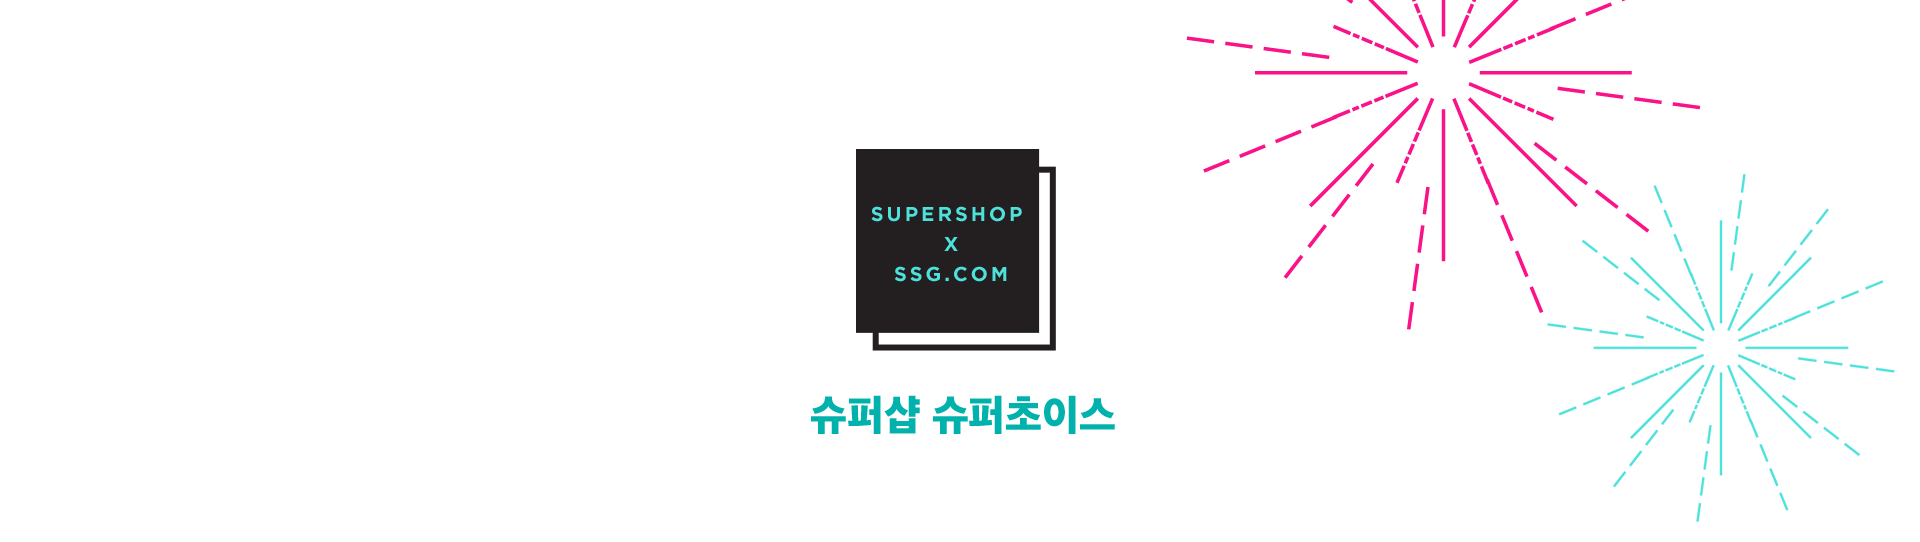 SUPERSHOP X SSG.COM